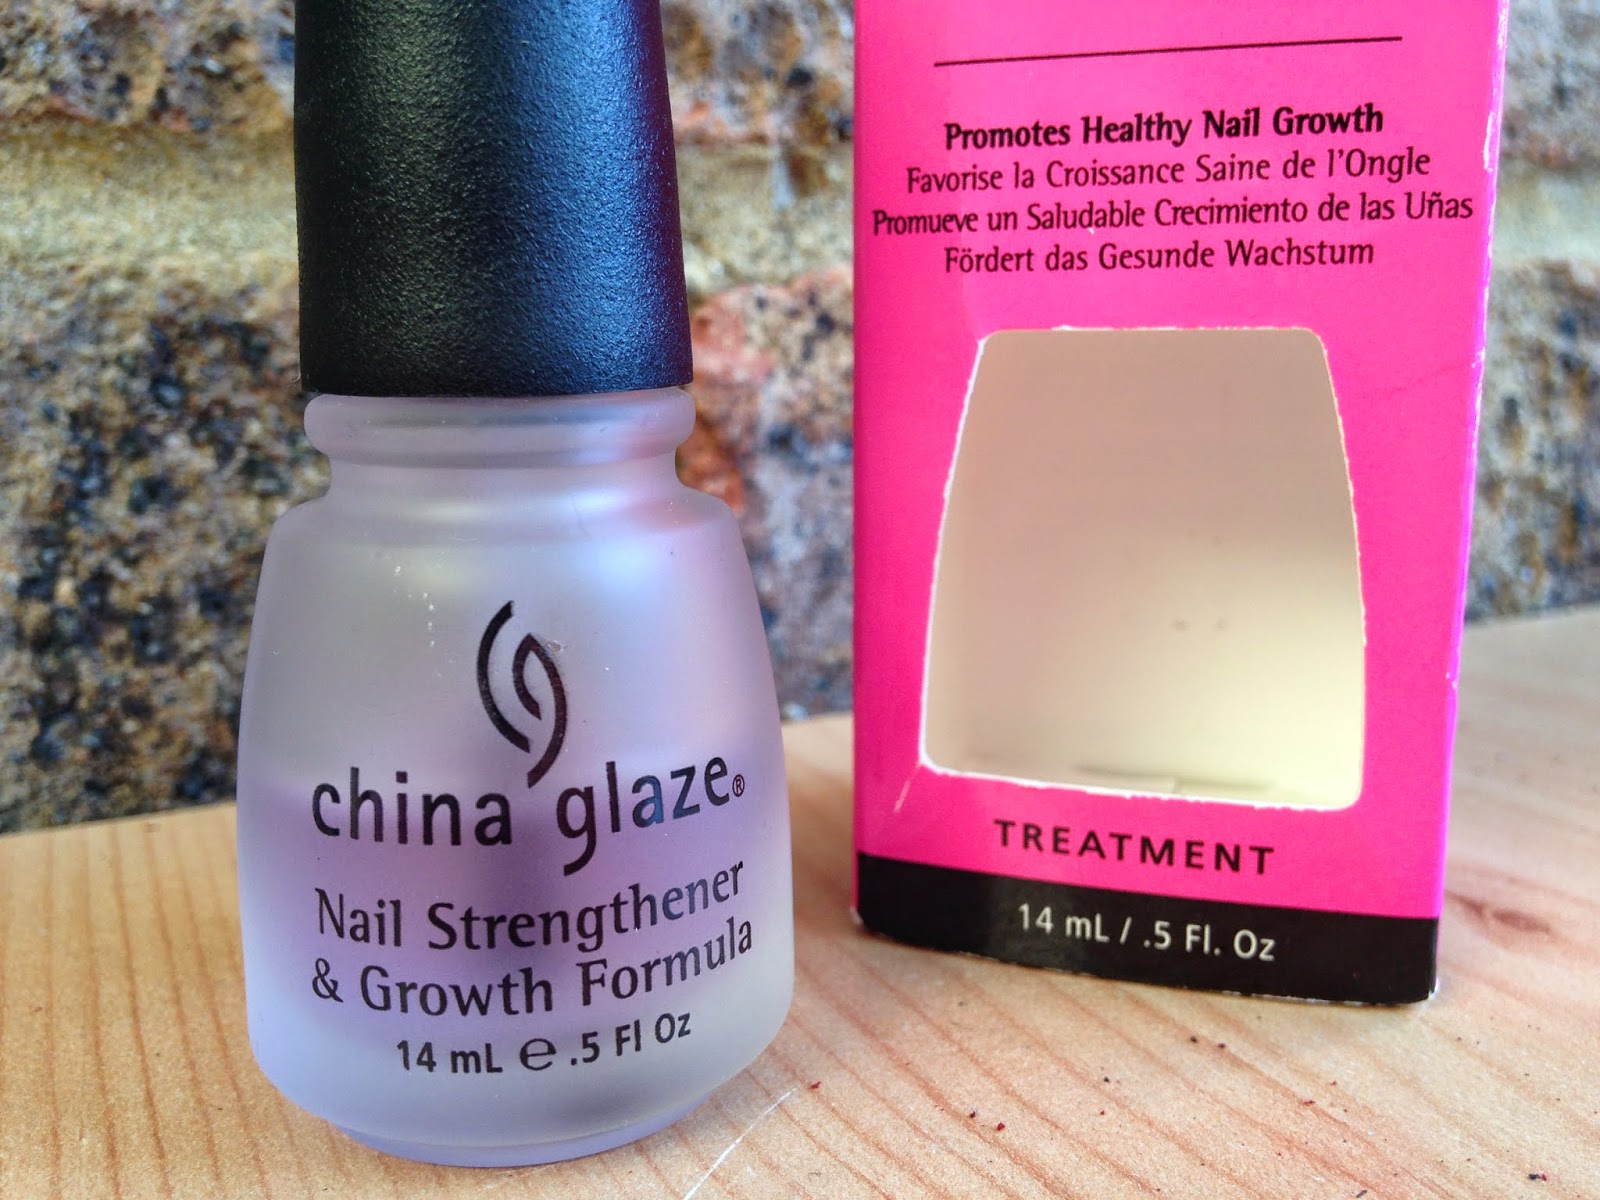 Ashleigh and Beth: China Glaze Nail Strengthener & Growth Formula